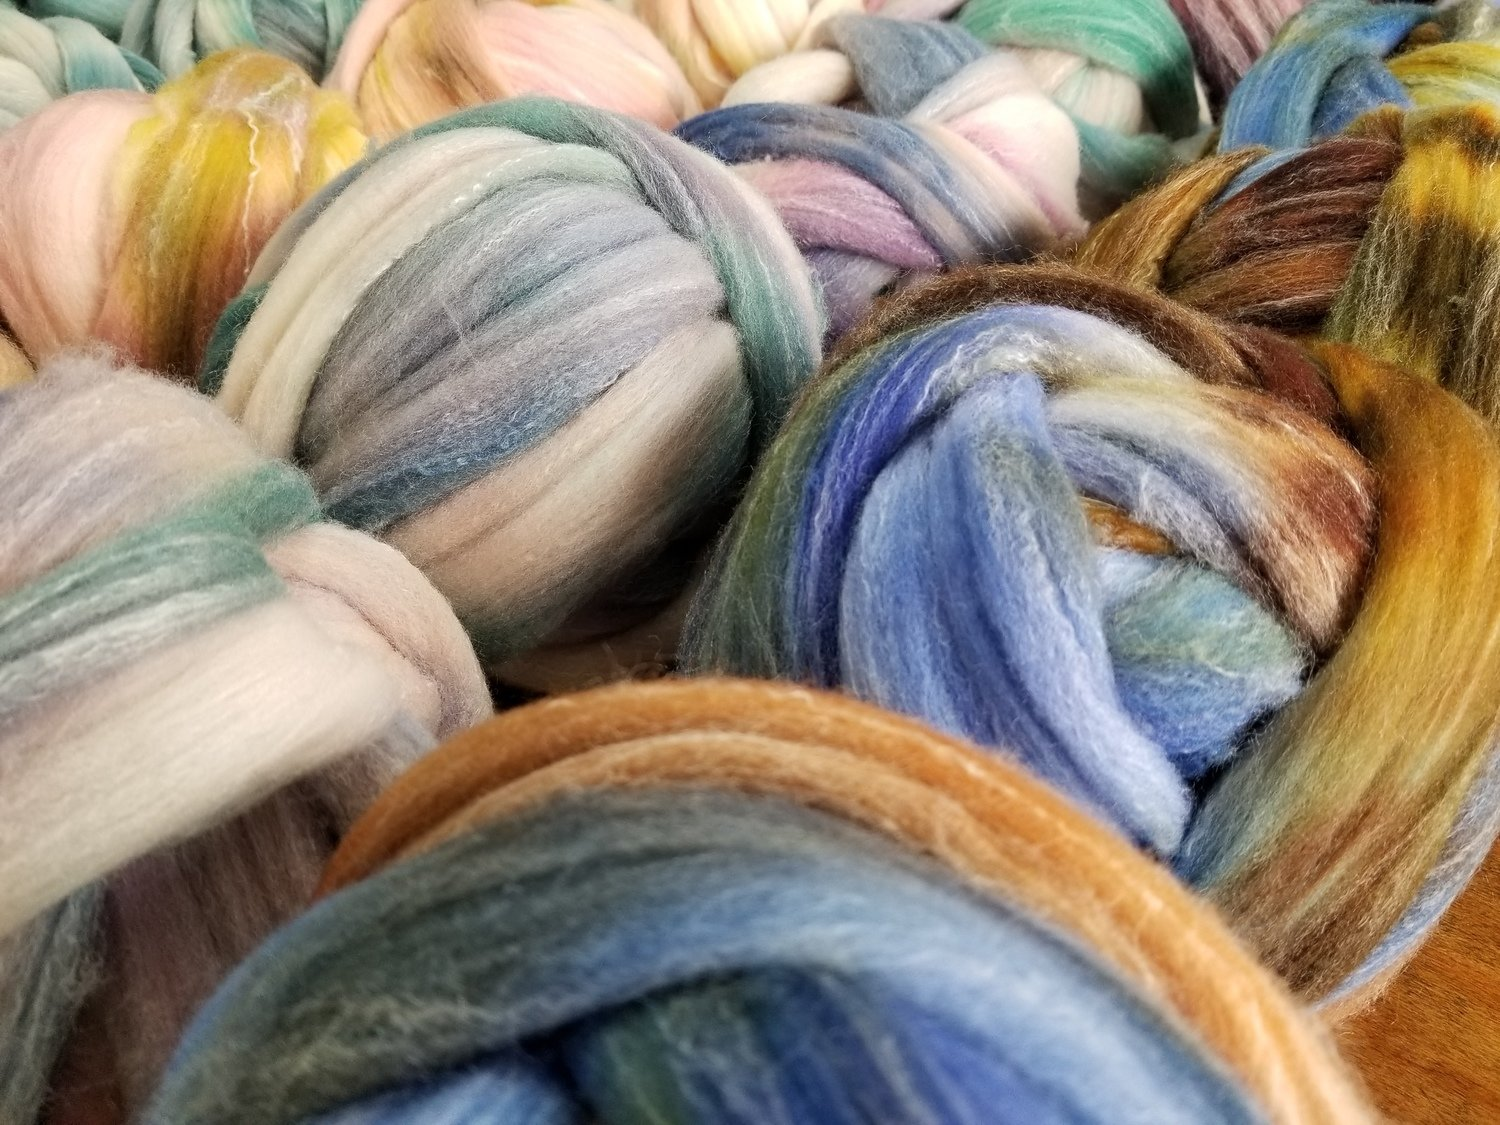 Polwarth/Silk 60/40 Dyed Top 4 oz/ 2 balls